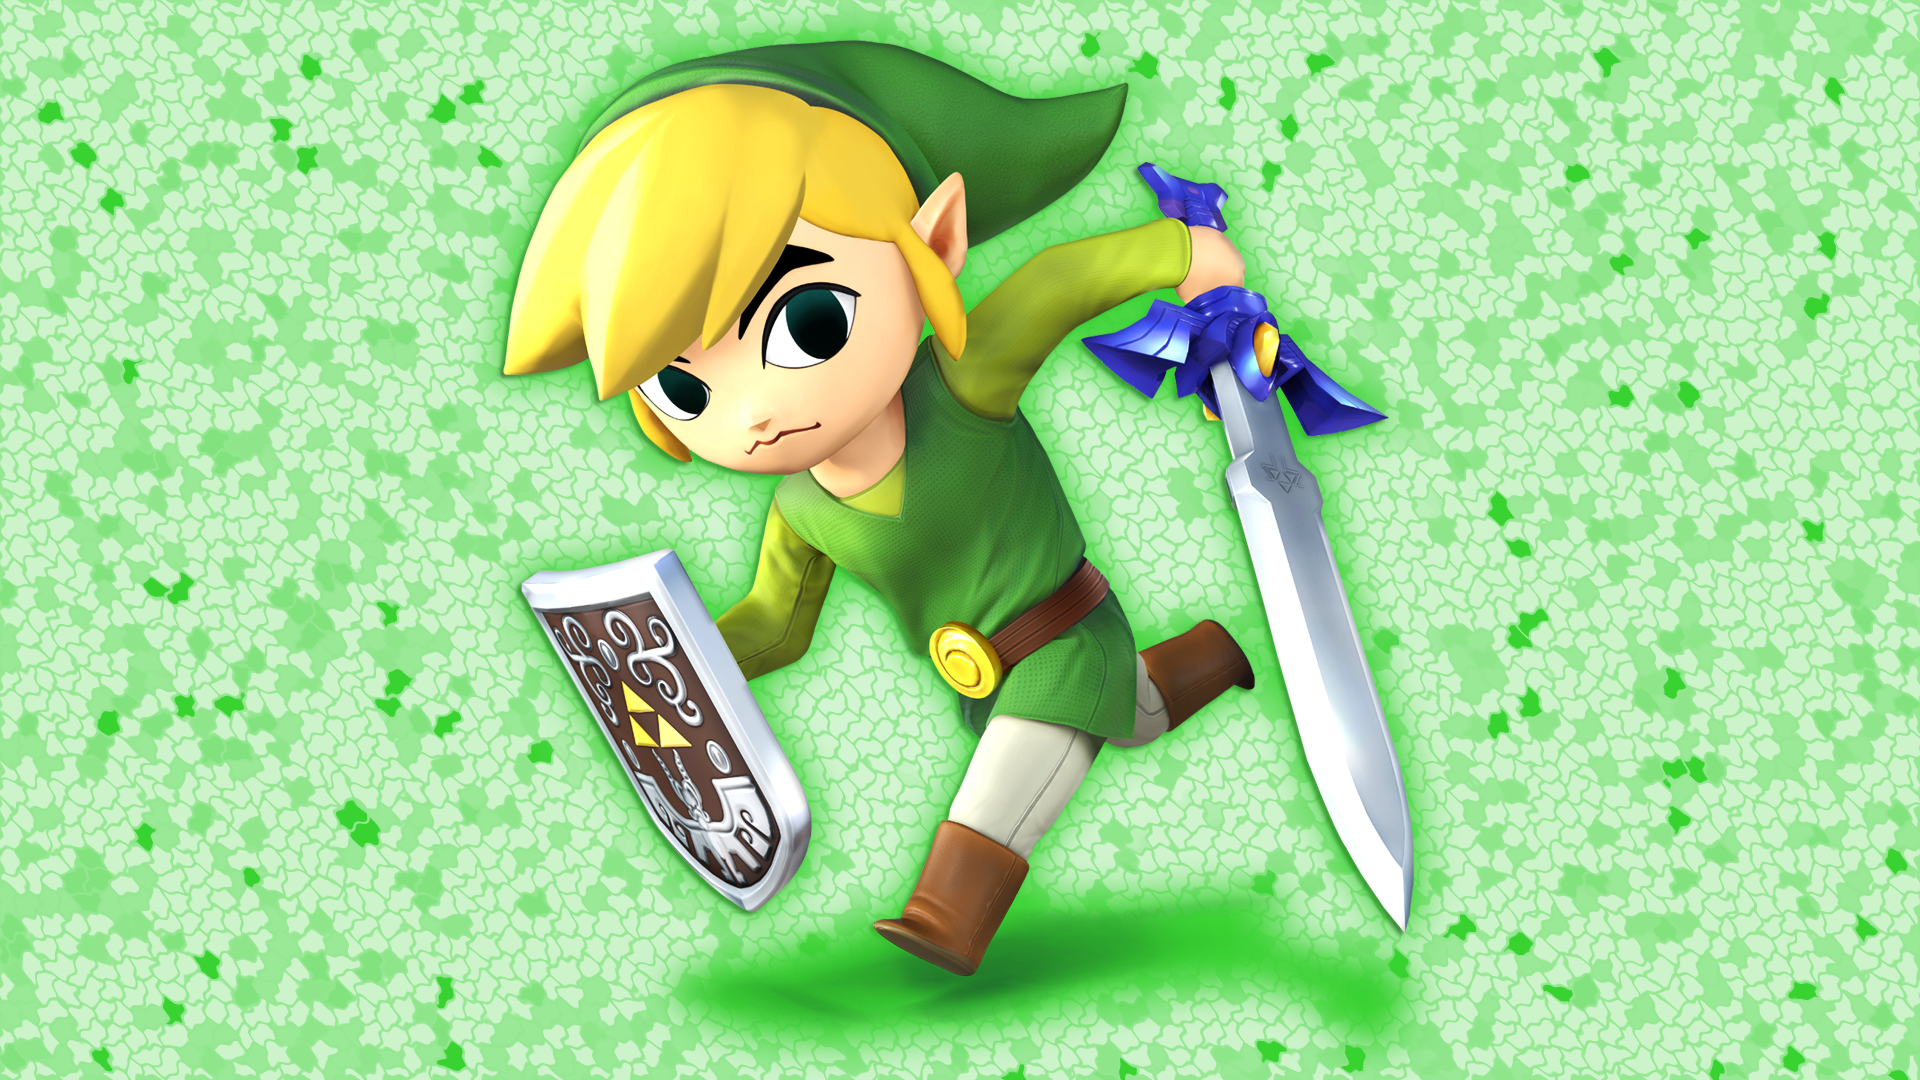 Toon Link Wallpaper by Glench 1920x1080